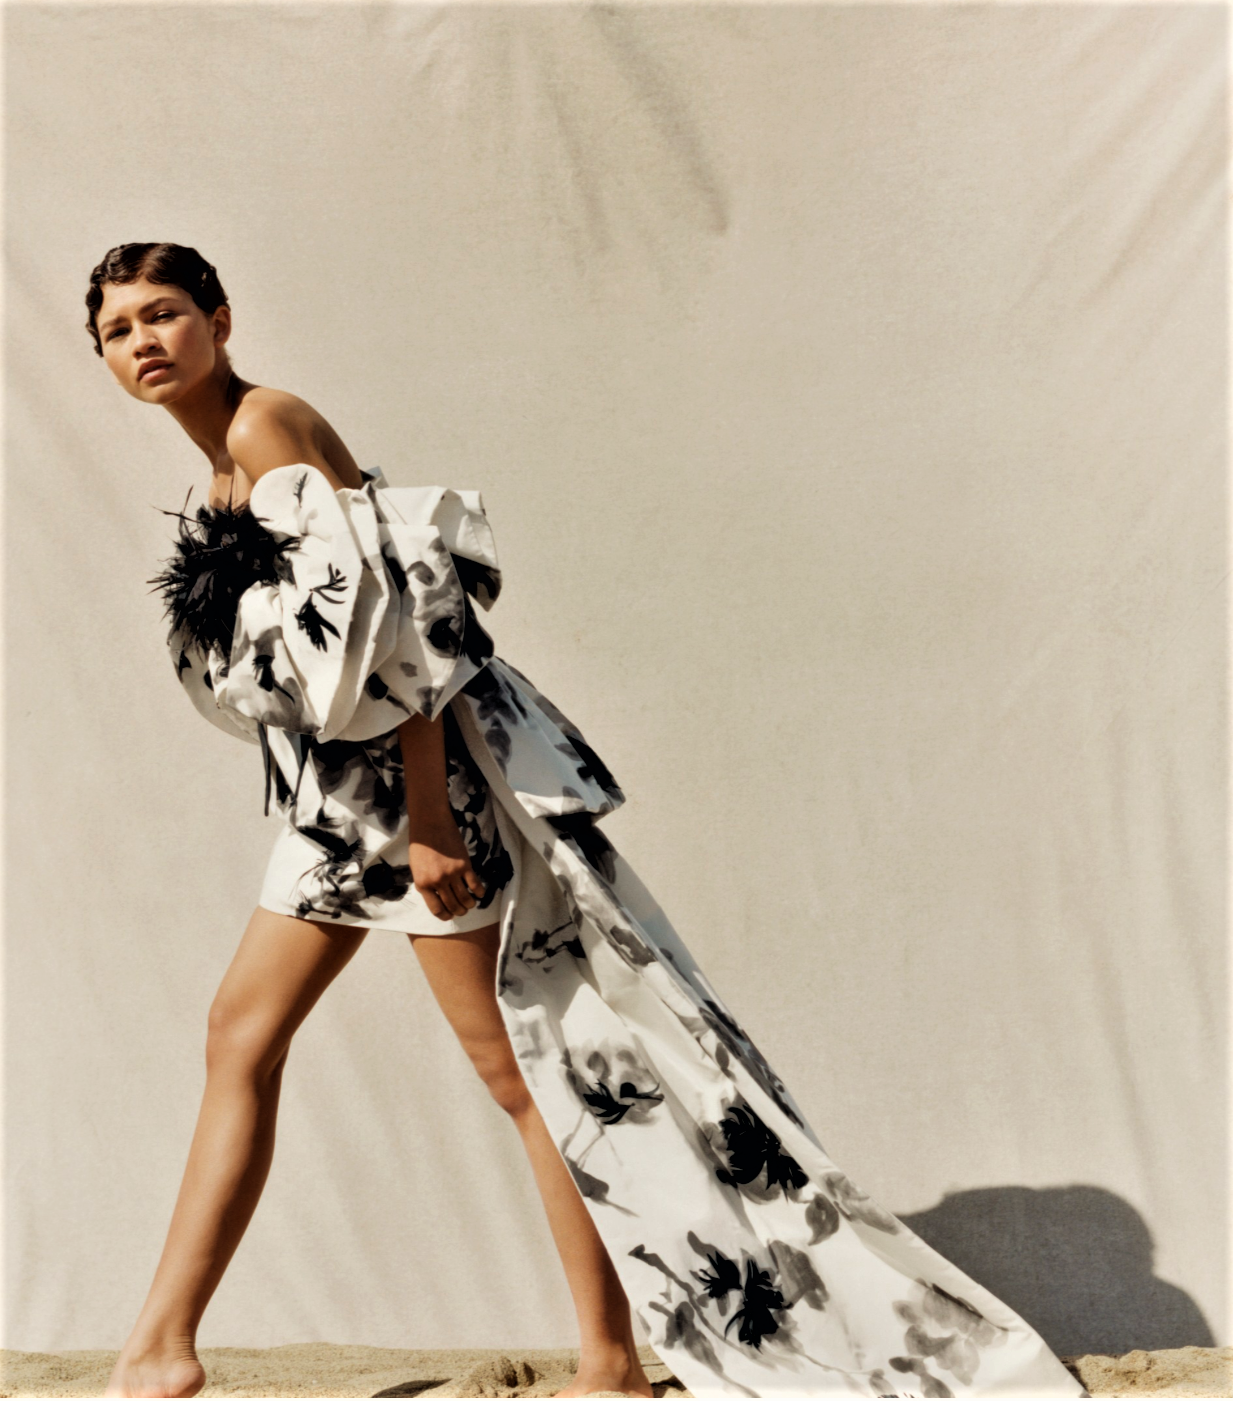 Zendaya poses in Marc Jacobs dress lensed by Tyler Mitchell for Vogue US June 2019.